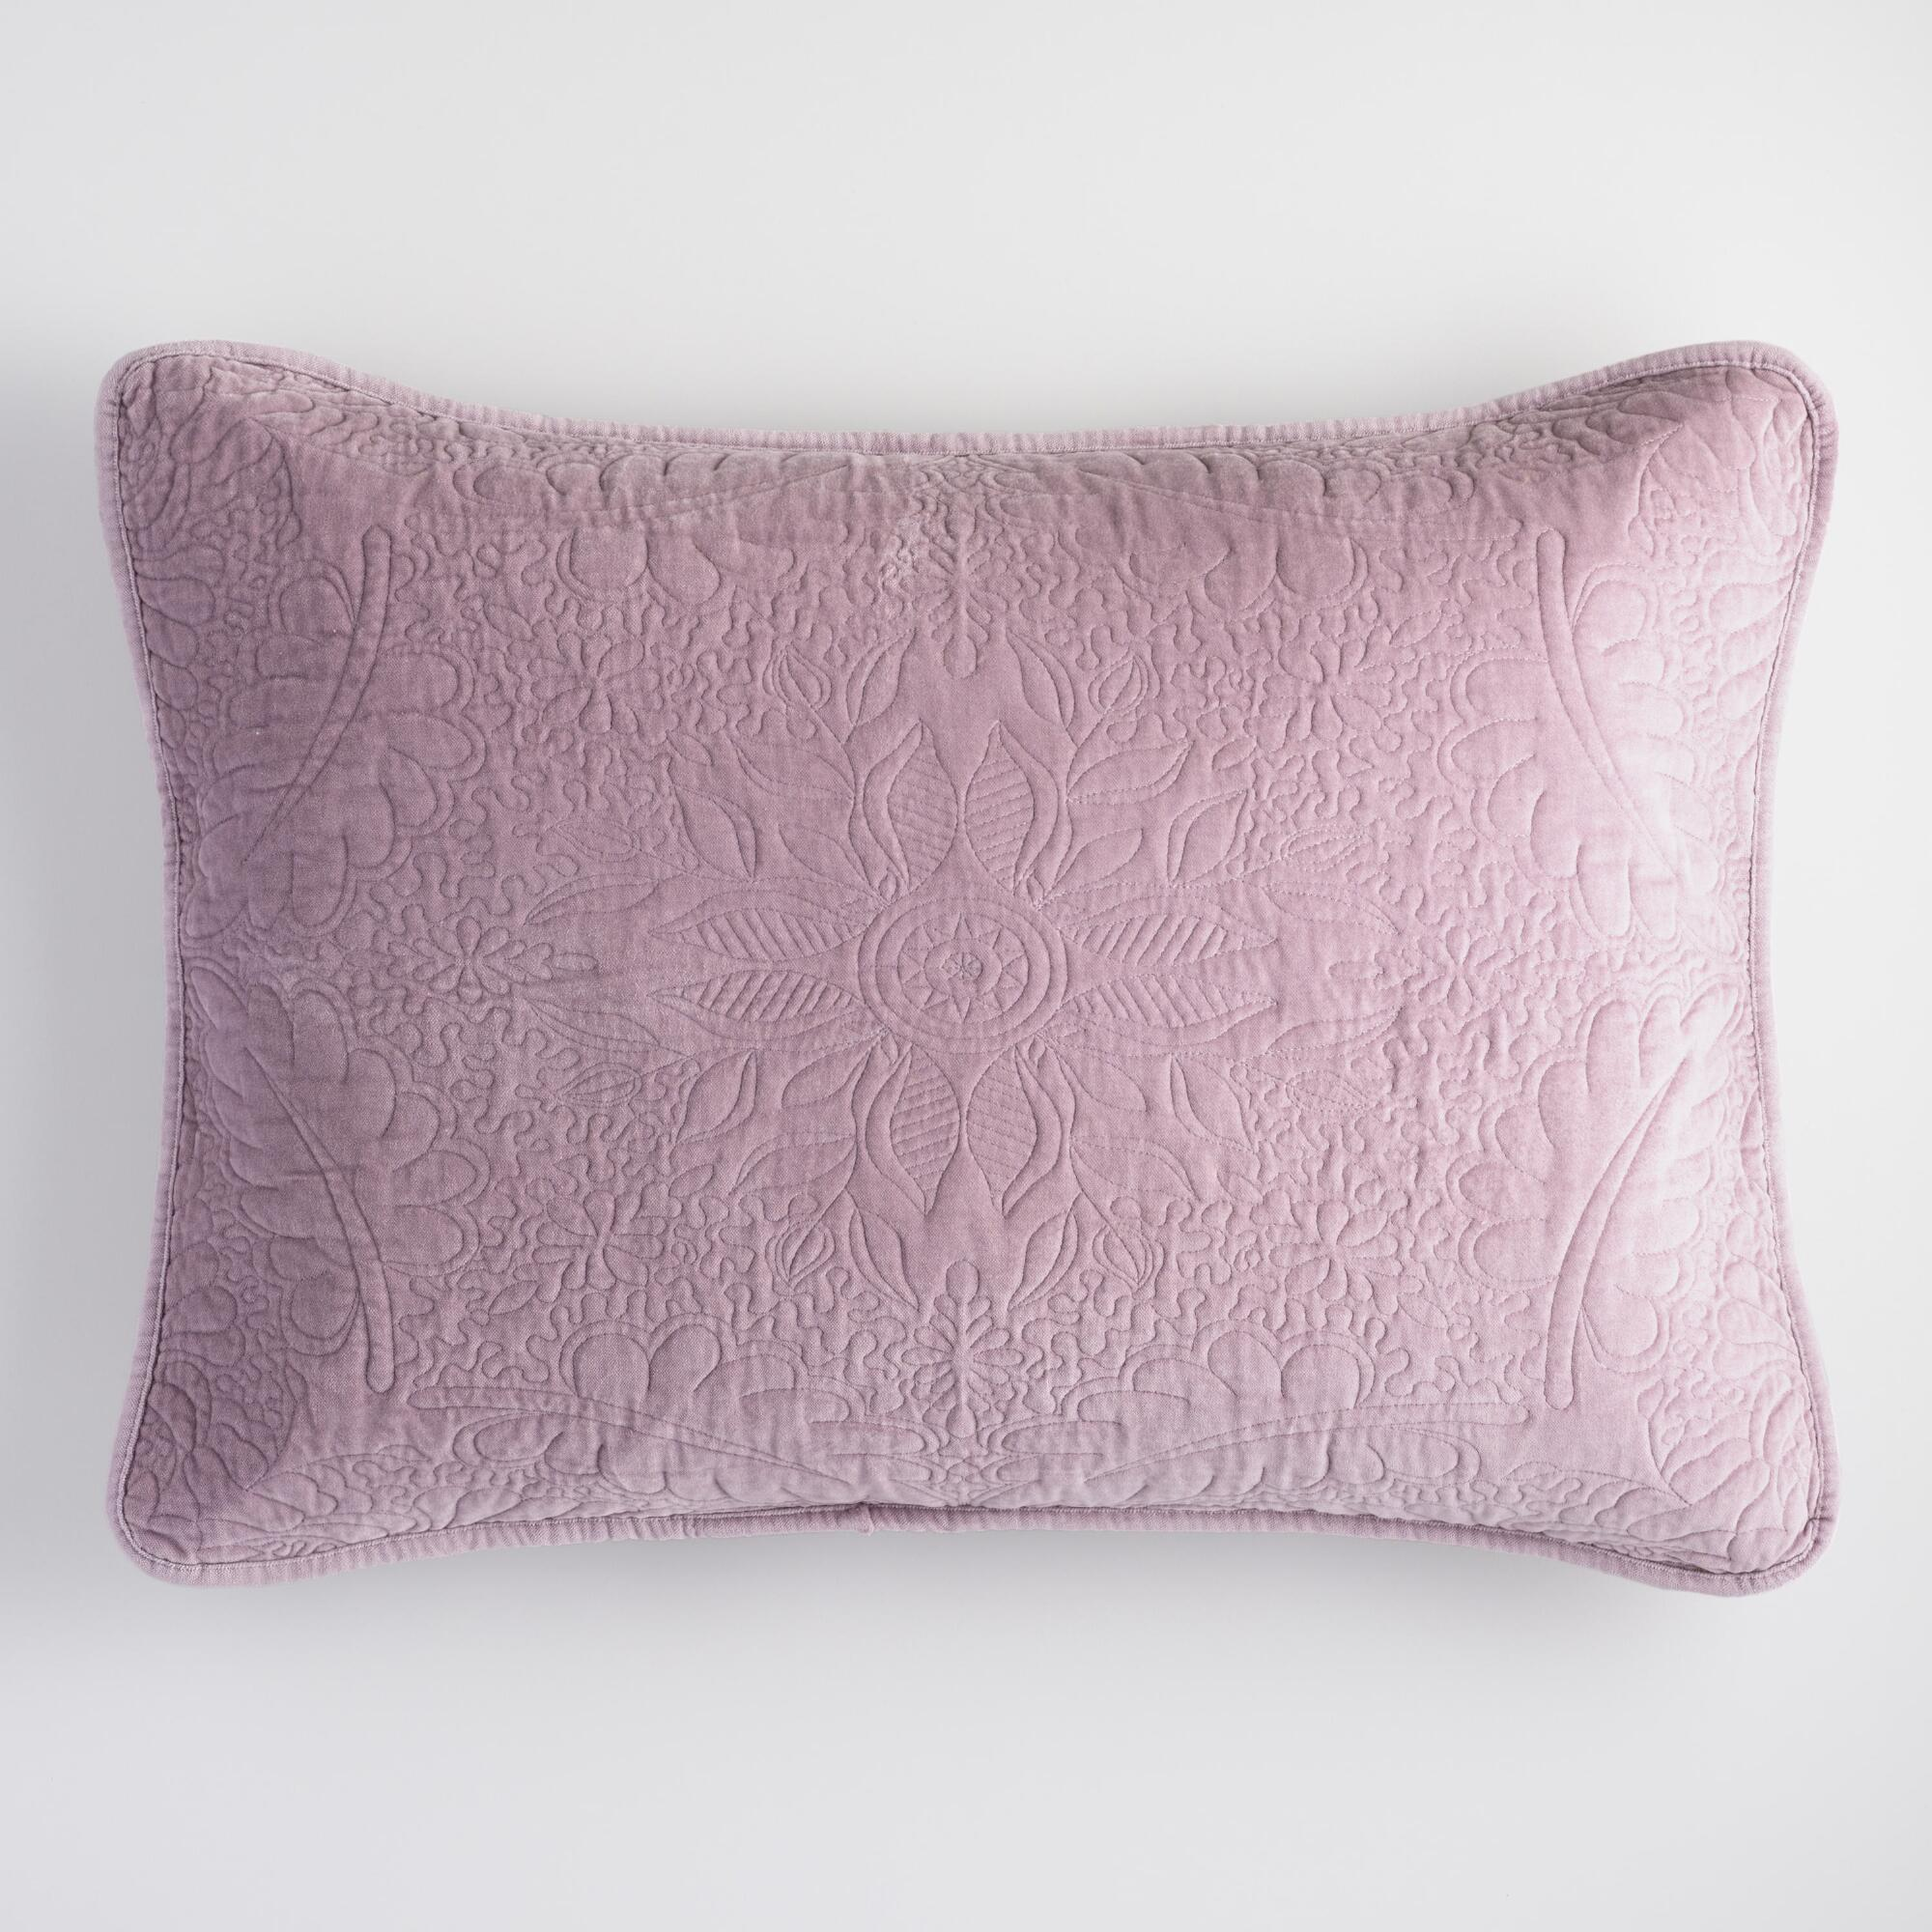 Lavender Velvet Throw Pillow : Lavender Velvet Pillow Shams Set of 2 World Market